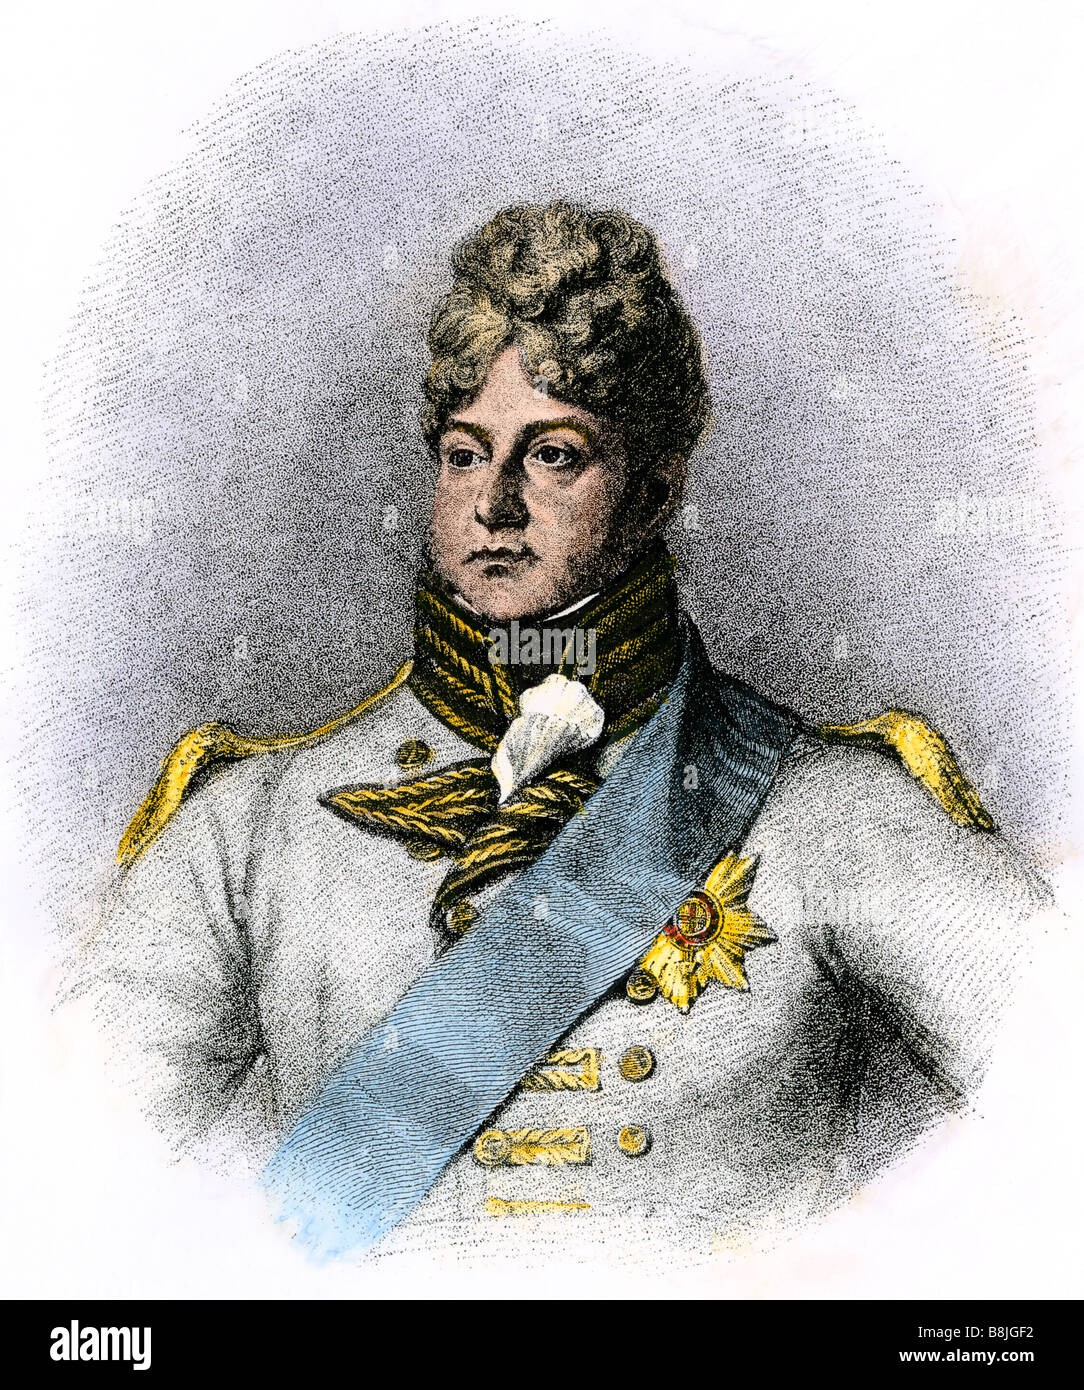 King George IV when Prince of Wales. Hand-colored woodcut - Stock Image